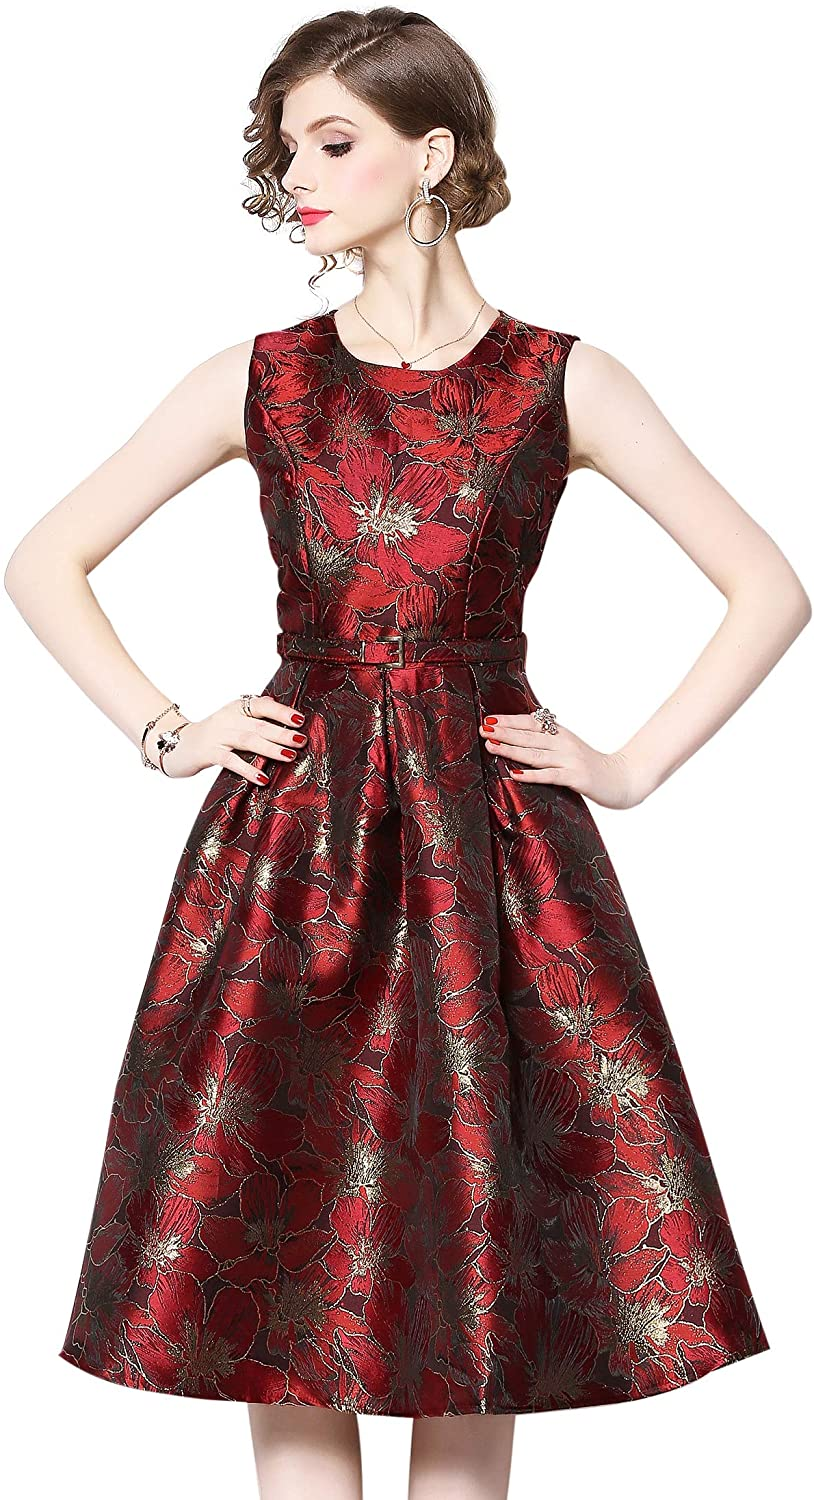 Women's Chic Elegant Sleeveless Round Neck Floral Jacquard Flared Cocktail Party Vintage Dress